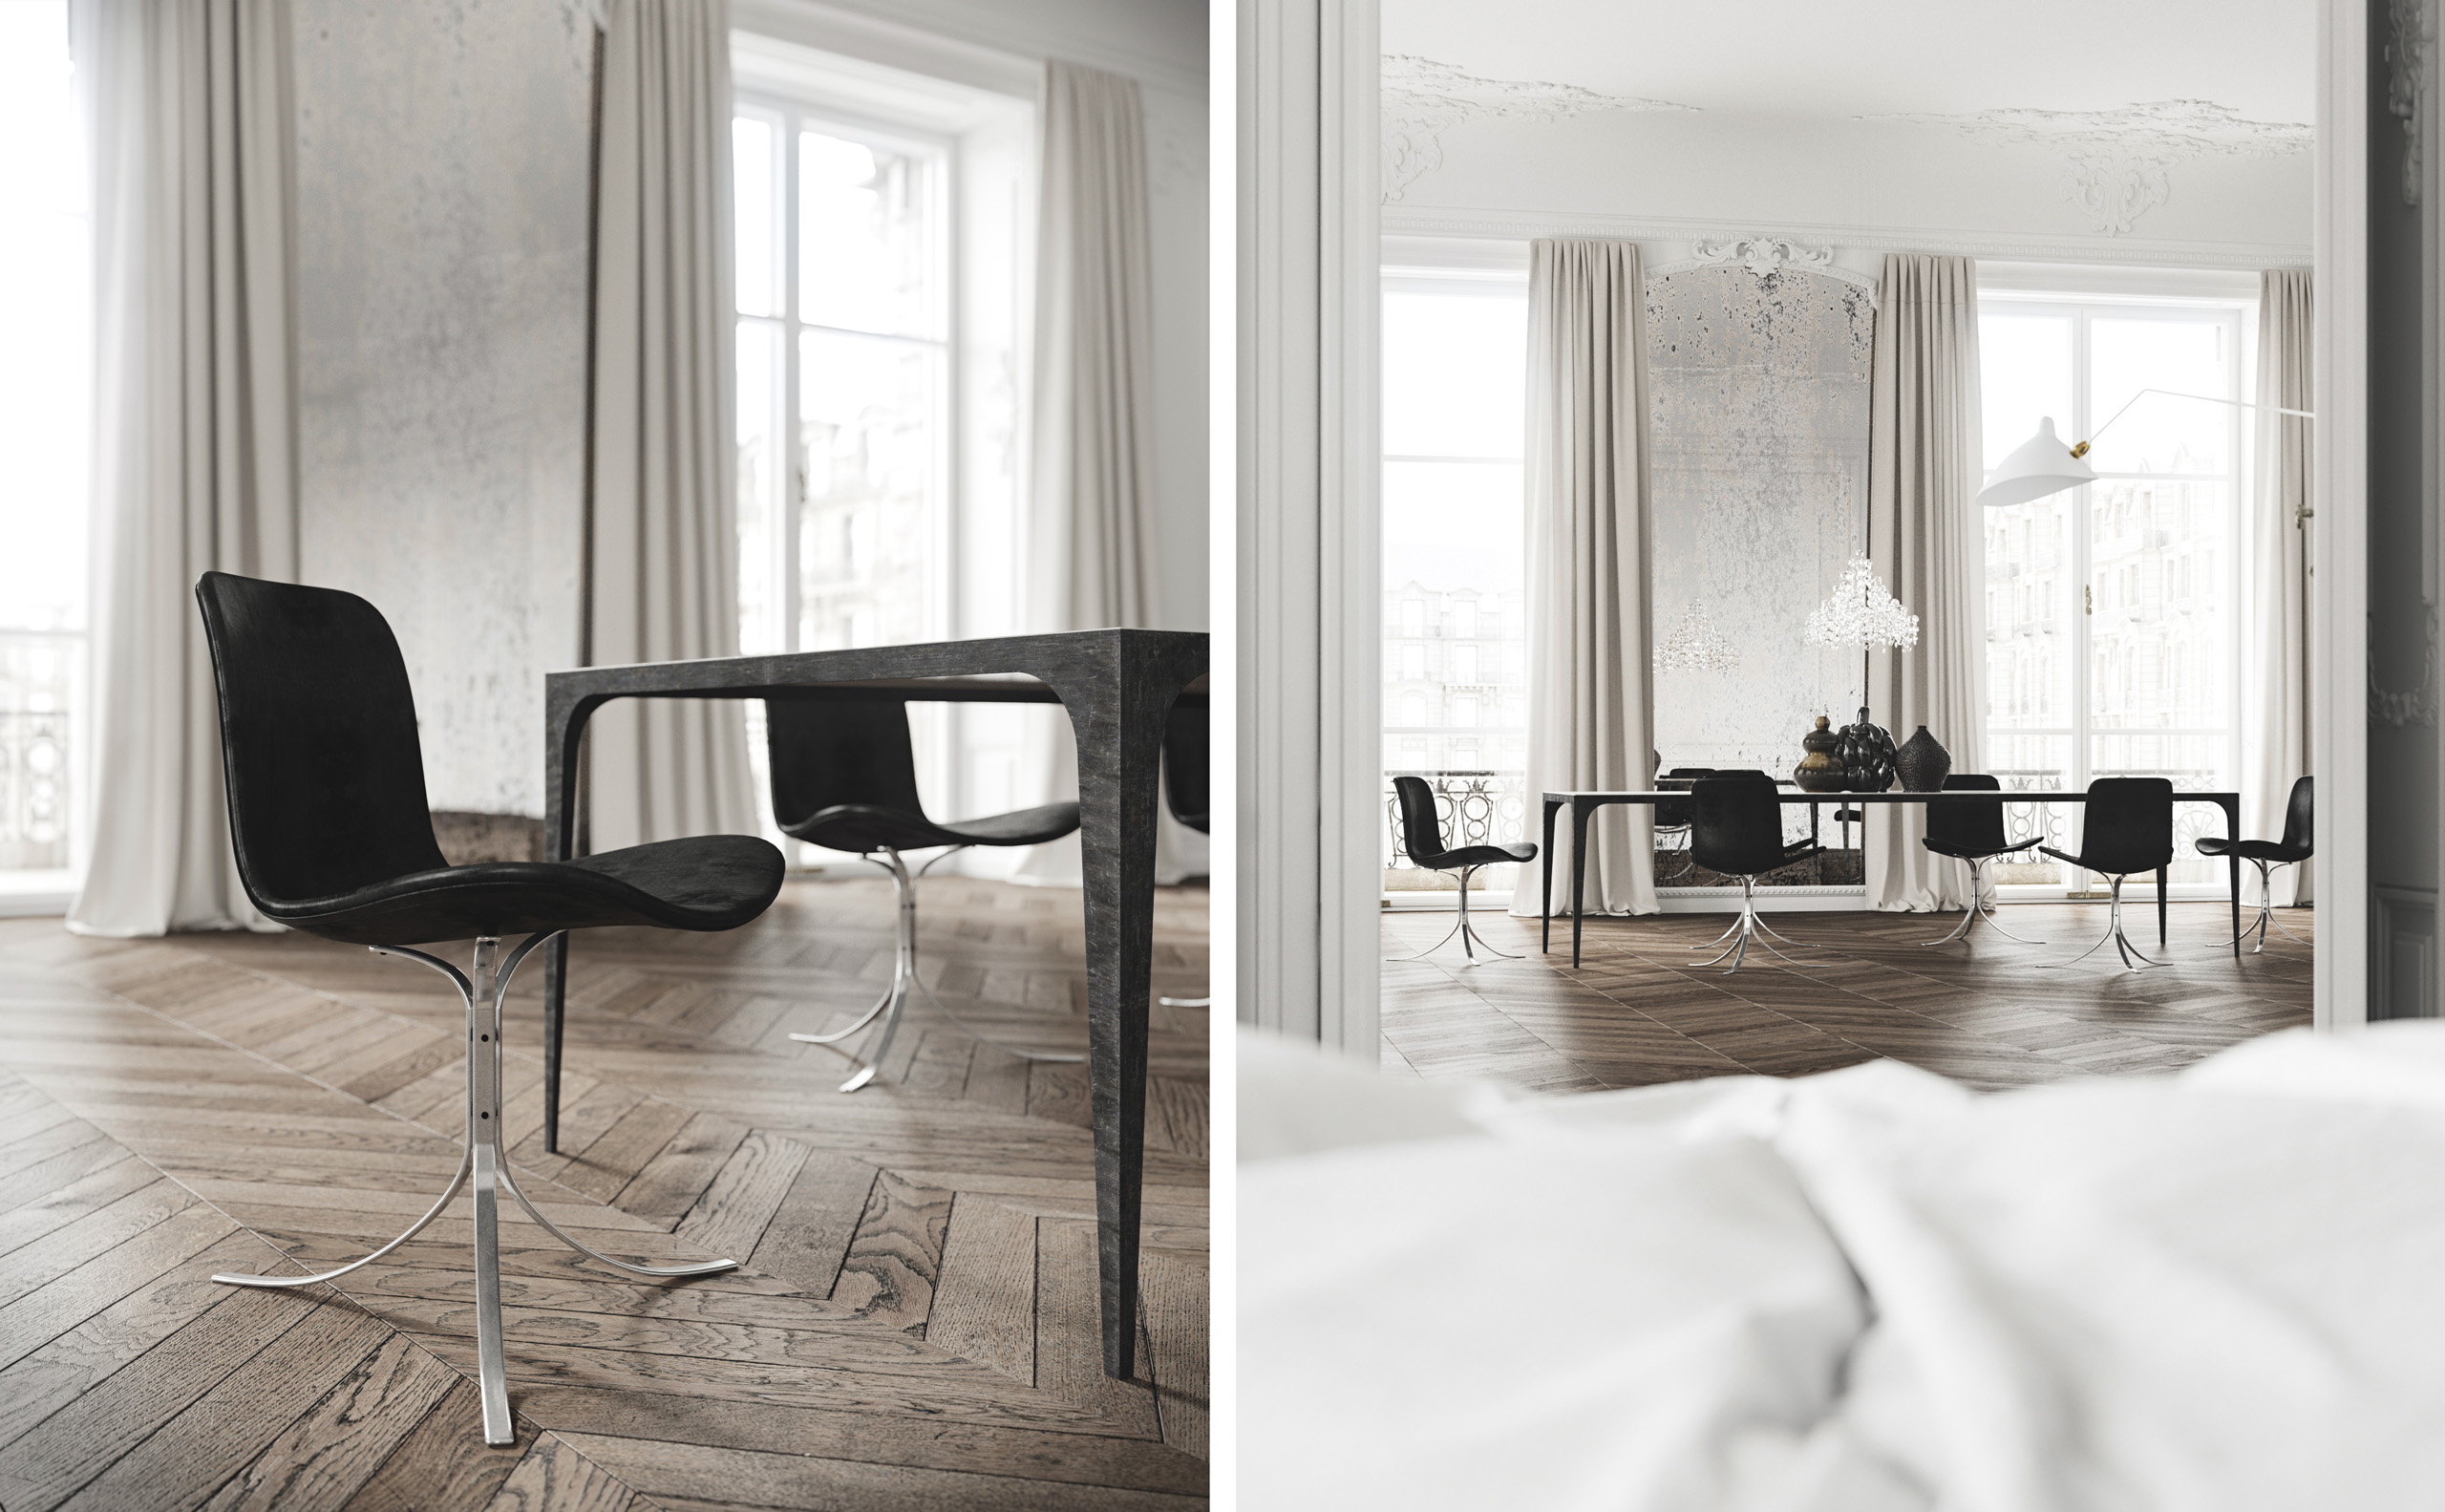 Décor: A Dream Classical Apartment by Jessica Vedel